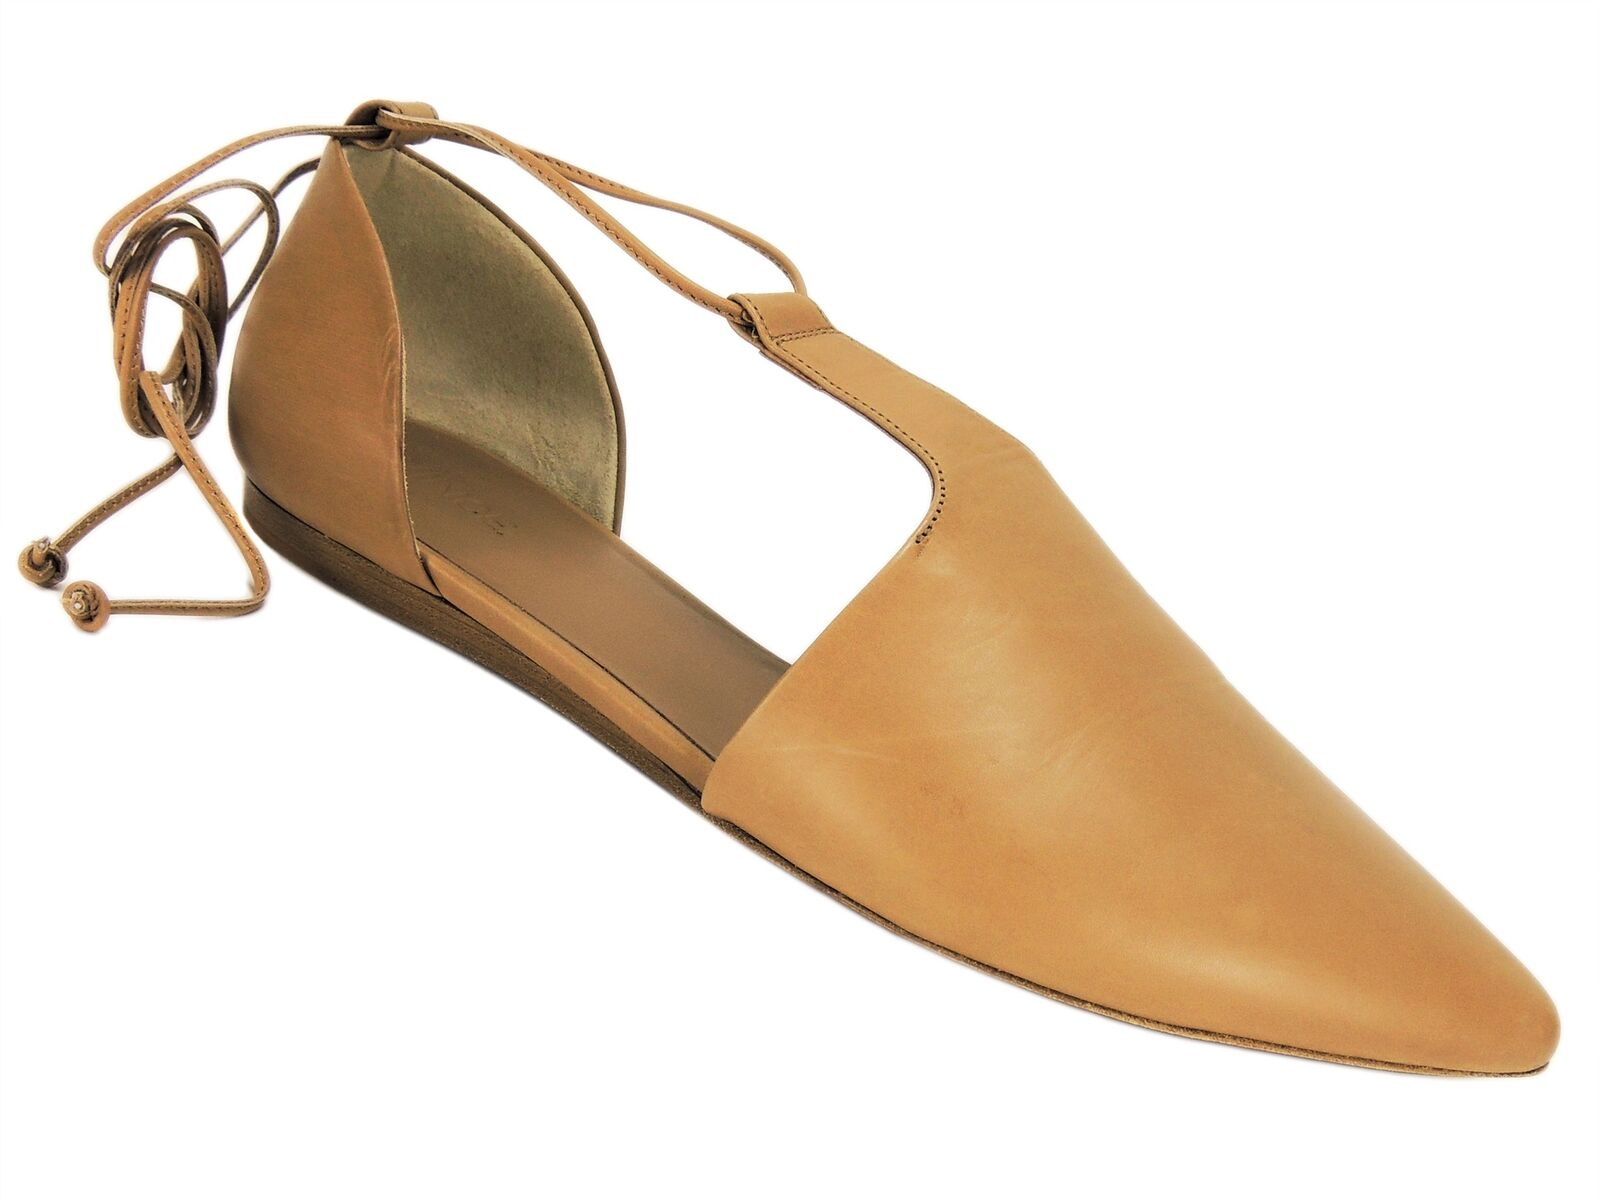 Vince Women's Noella Pointed-Toe d'Orsay flats Sand Sand Sand Leather Size 7 M bb769f